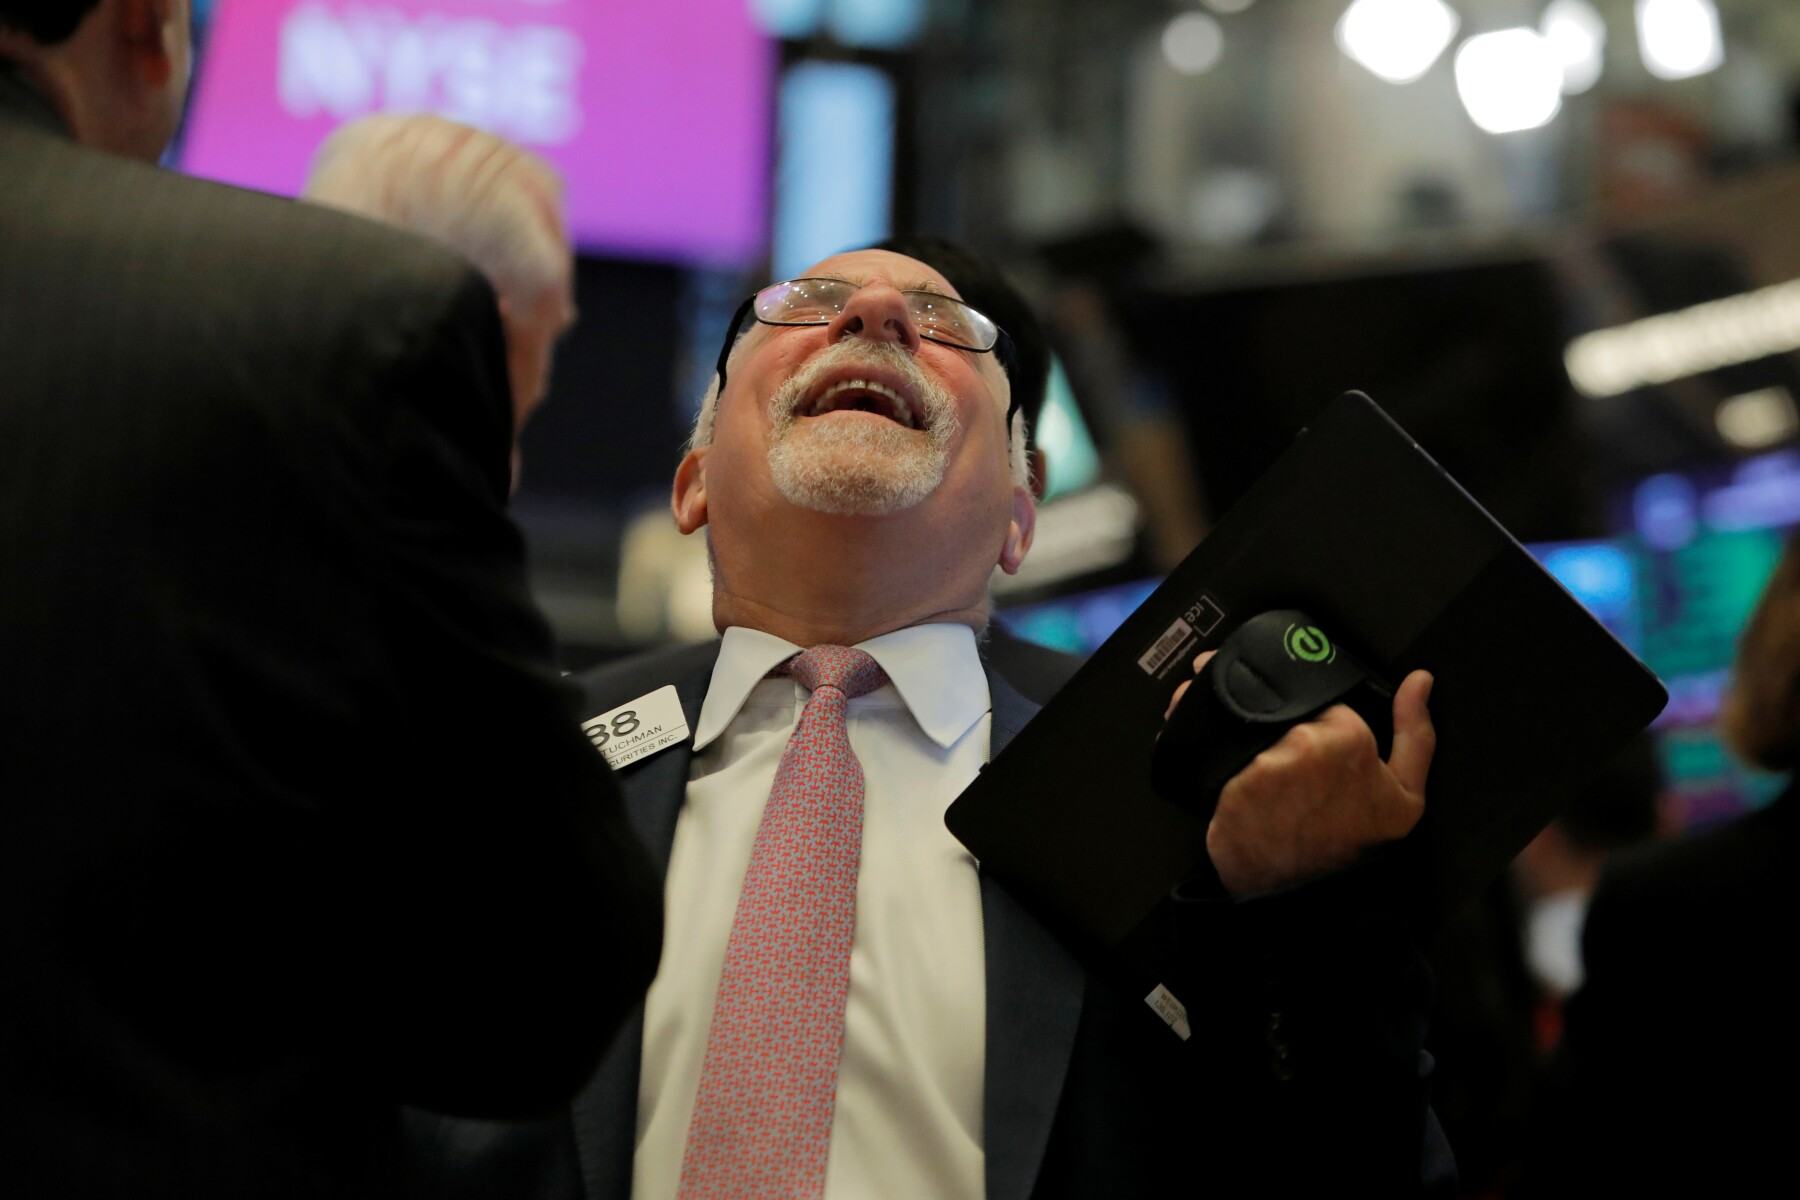 Trader Peter Tuchman reacts during the opening of the market on the trading floor at the New York Stock Exchange (NYSE) in New York City